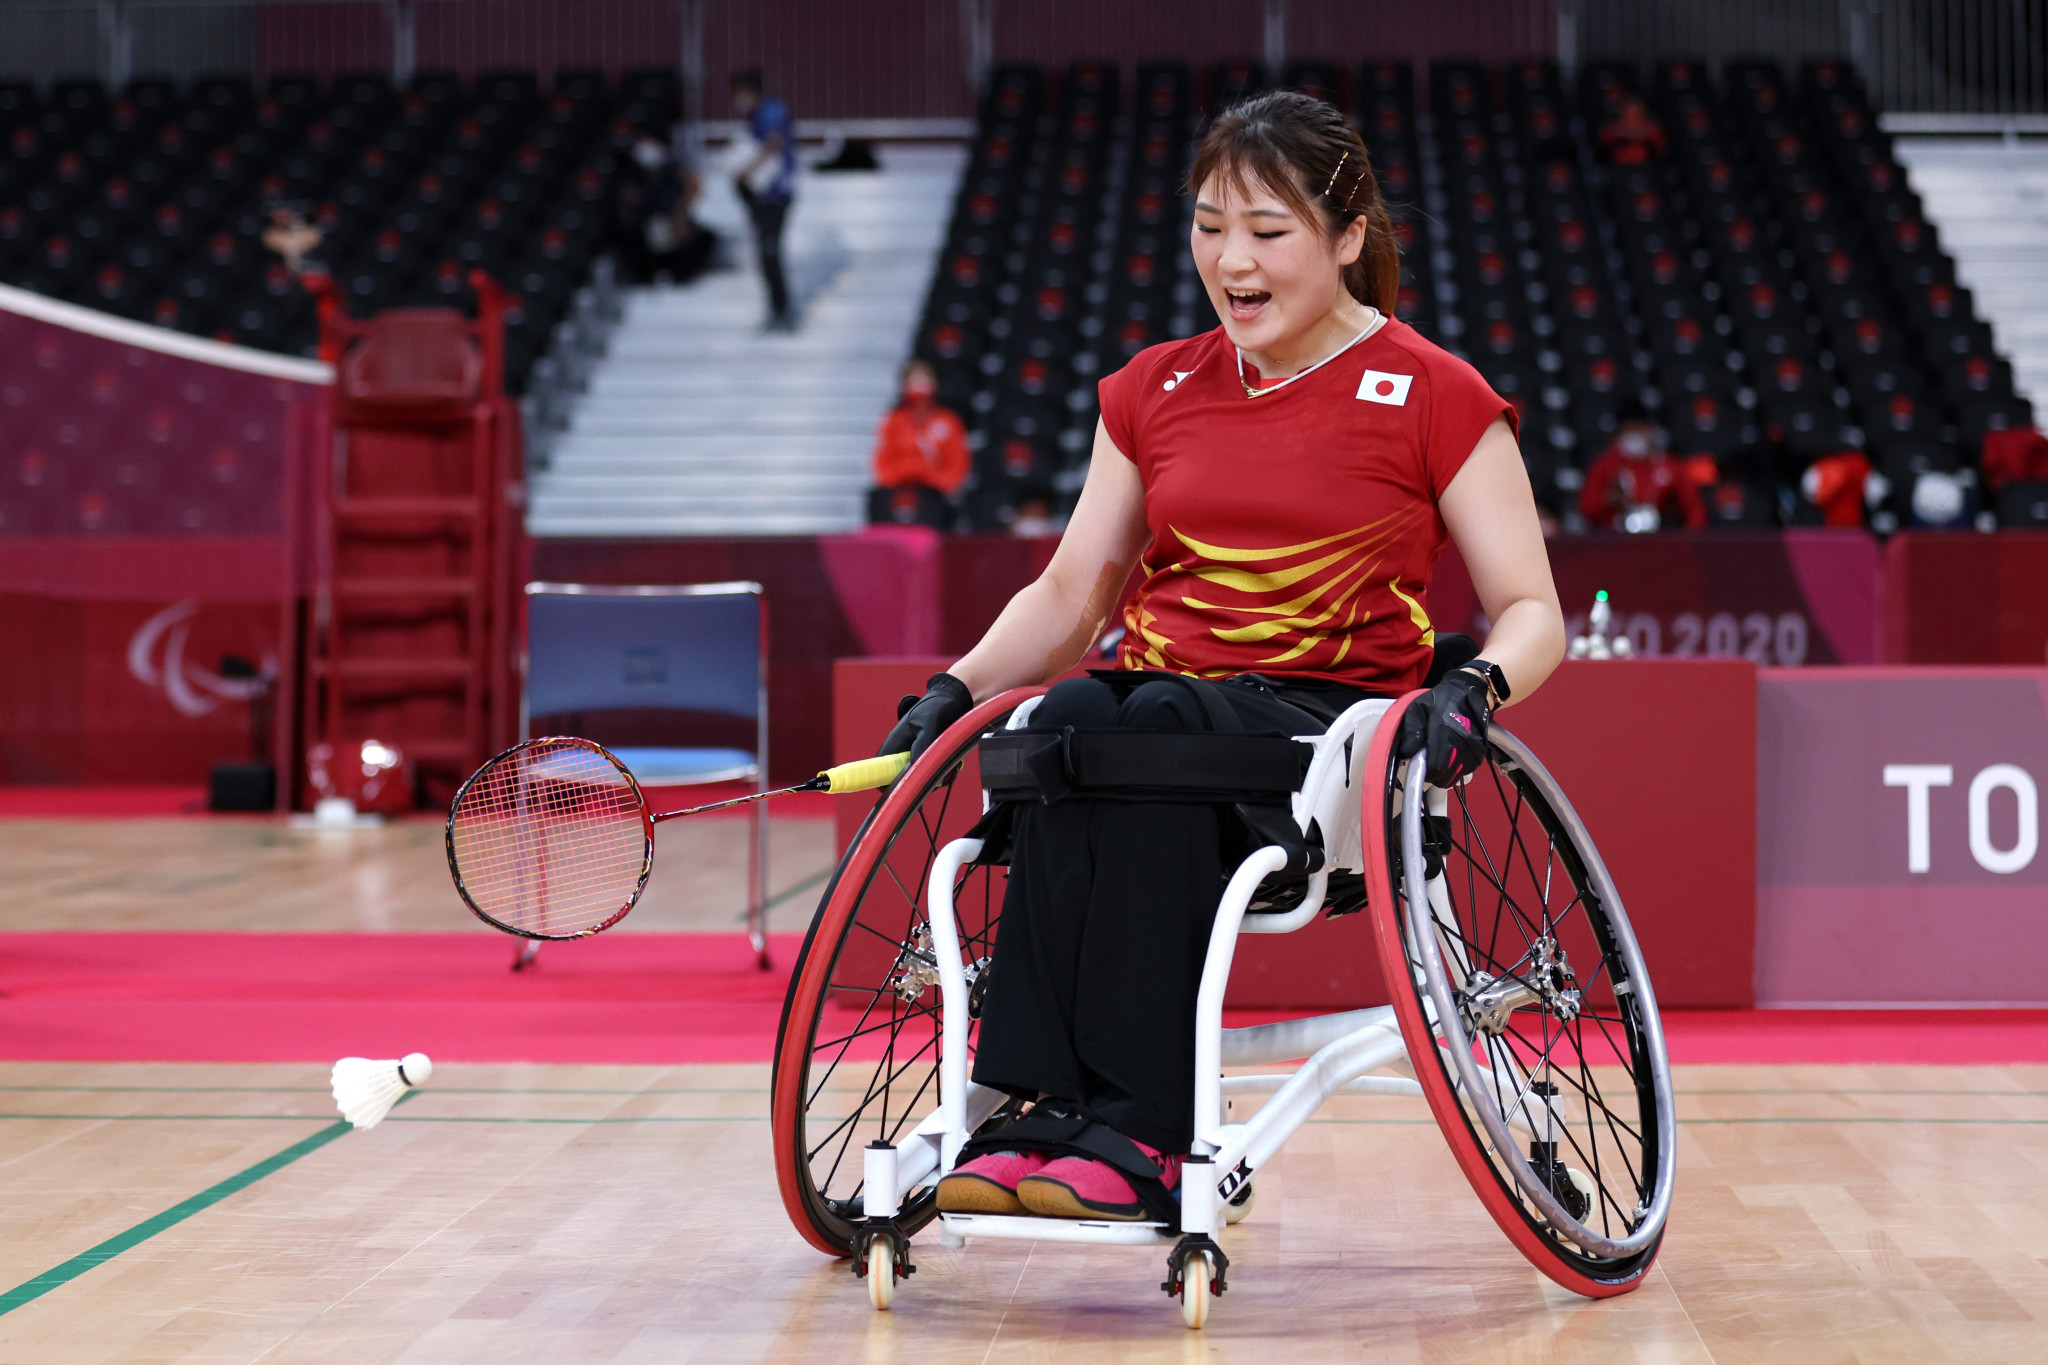 Tokyo 2020 Paralympic Games: Day 11 of competition